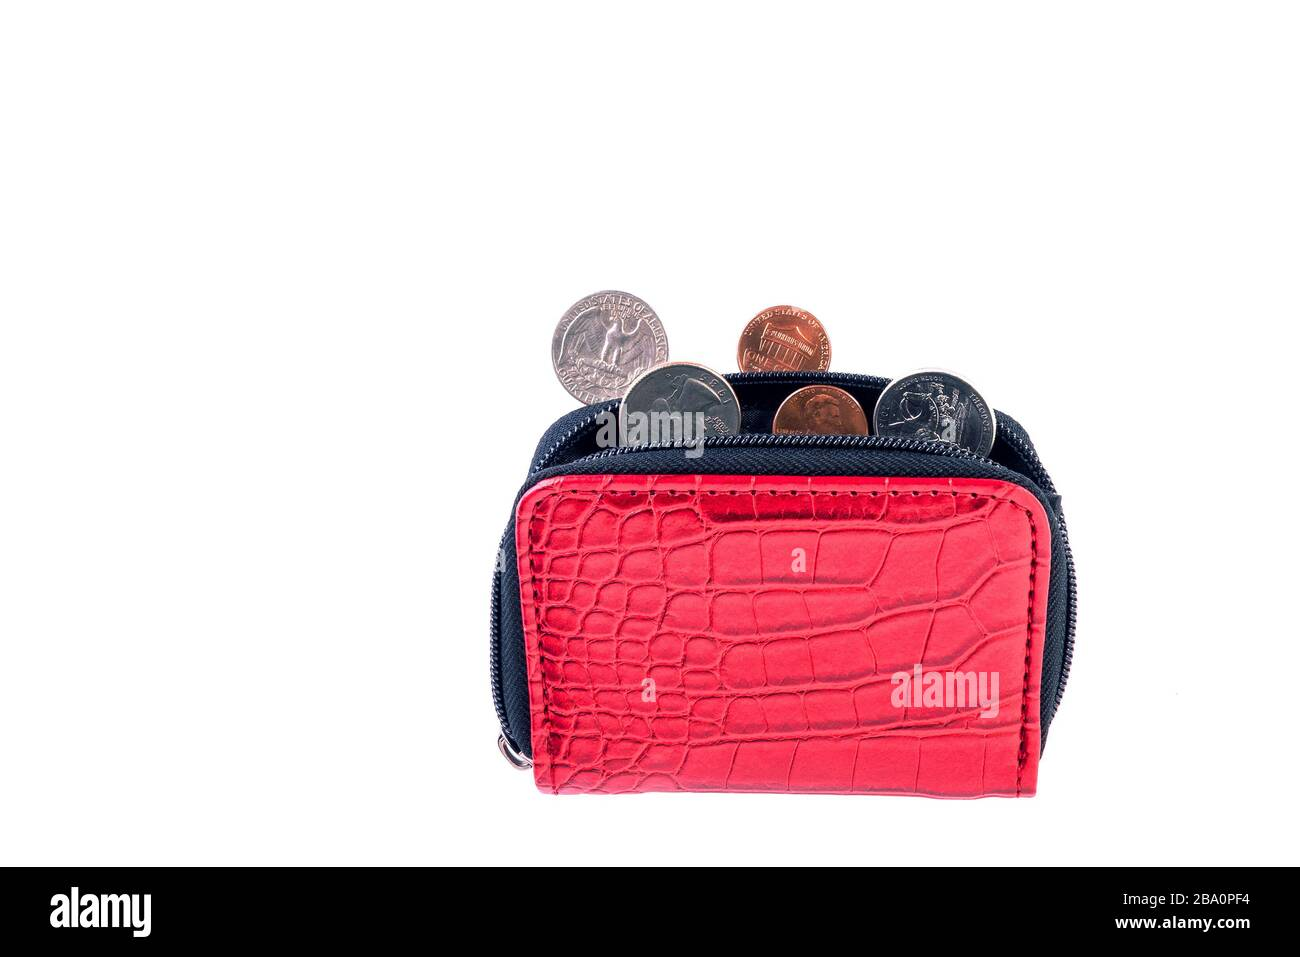 Open red leather pocket wallet with coins one cent and a quarter dollar nearby. Financial crisis, poverty, lack of money. Isolated on white background Stock Photo